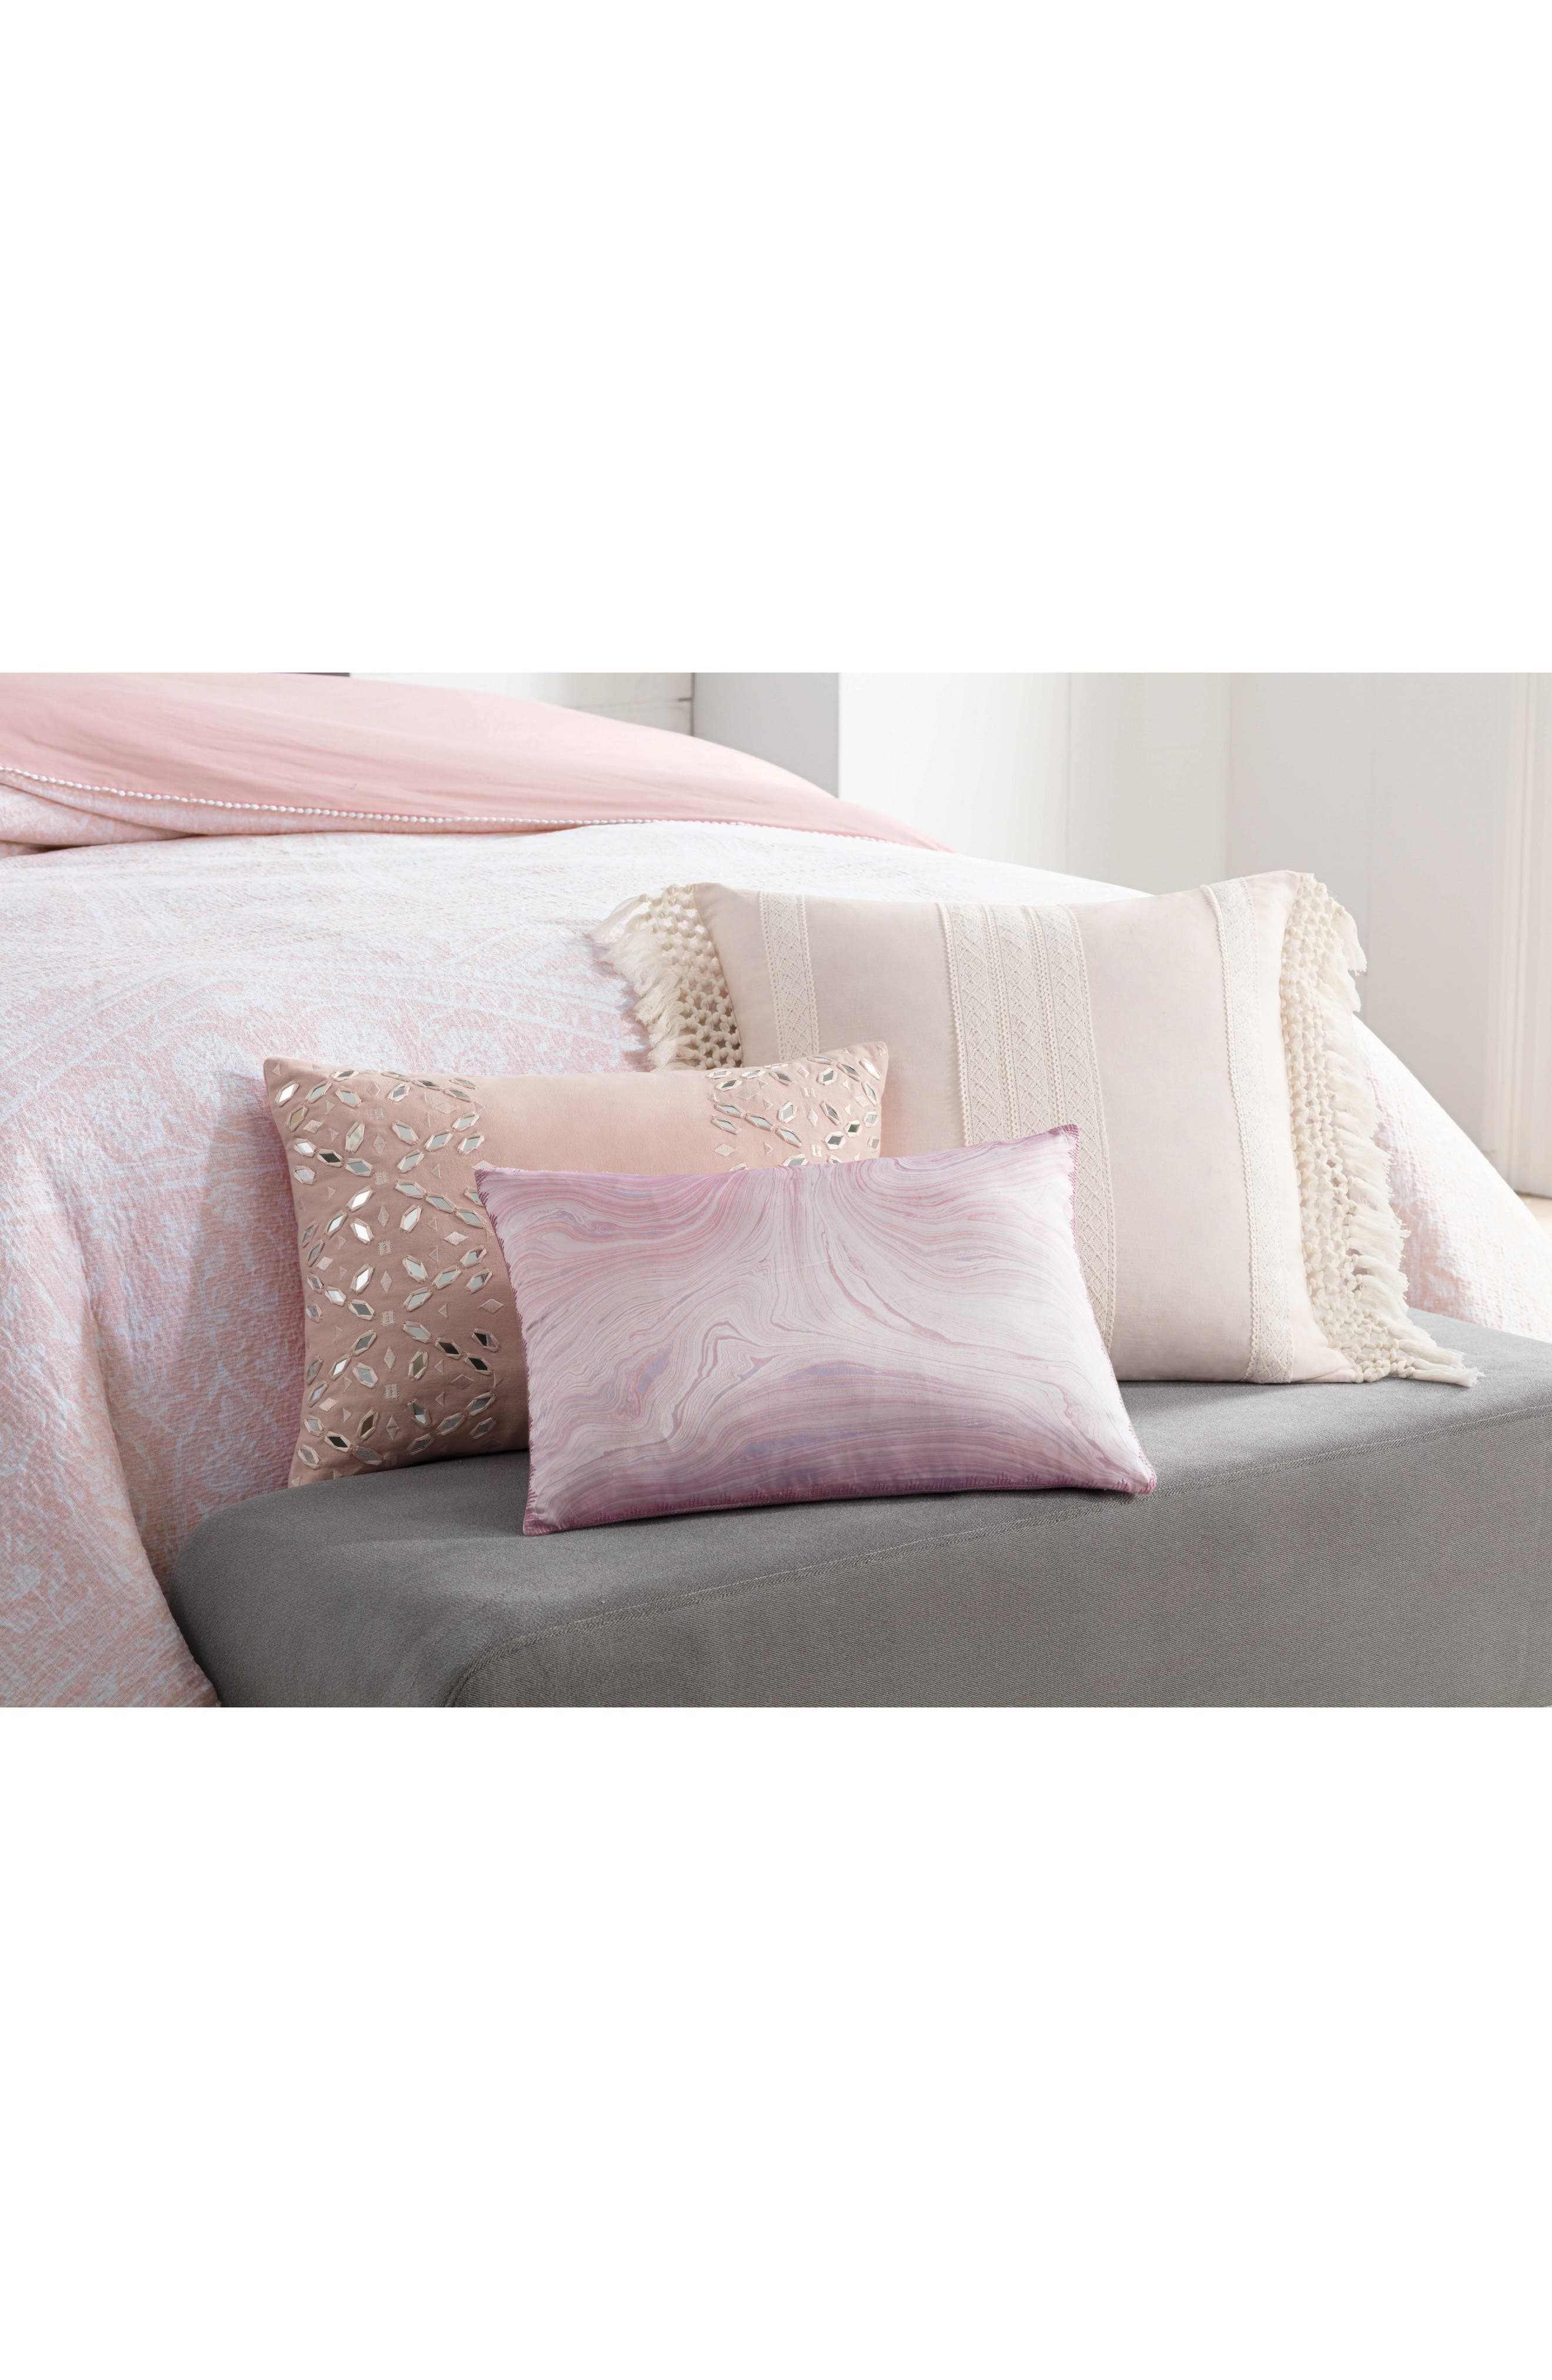 Overscale Tapestry Accent Pillow,                             Alternate thumbnail 2, color,                             Blush